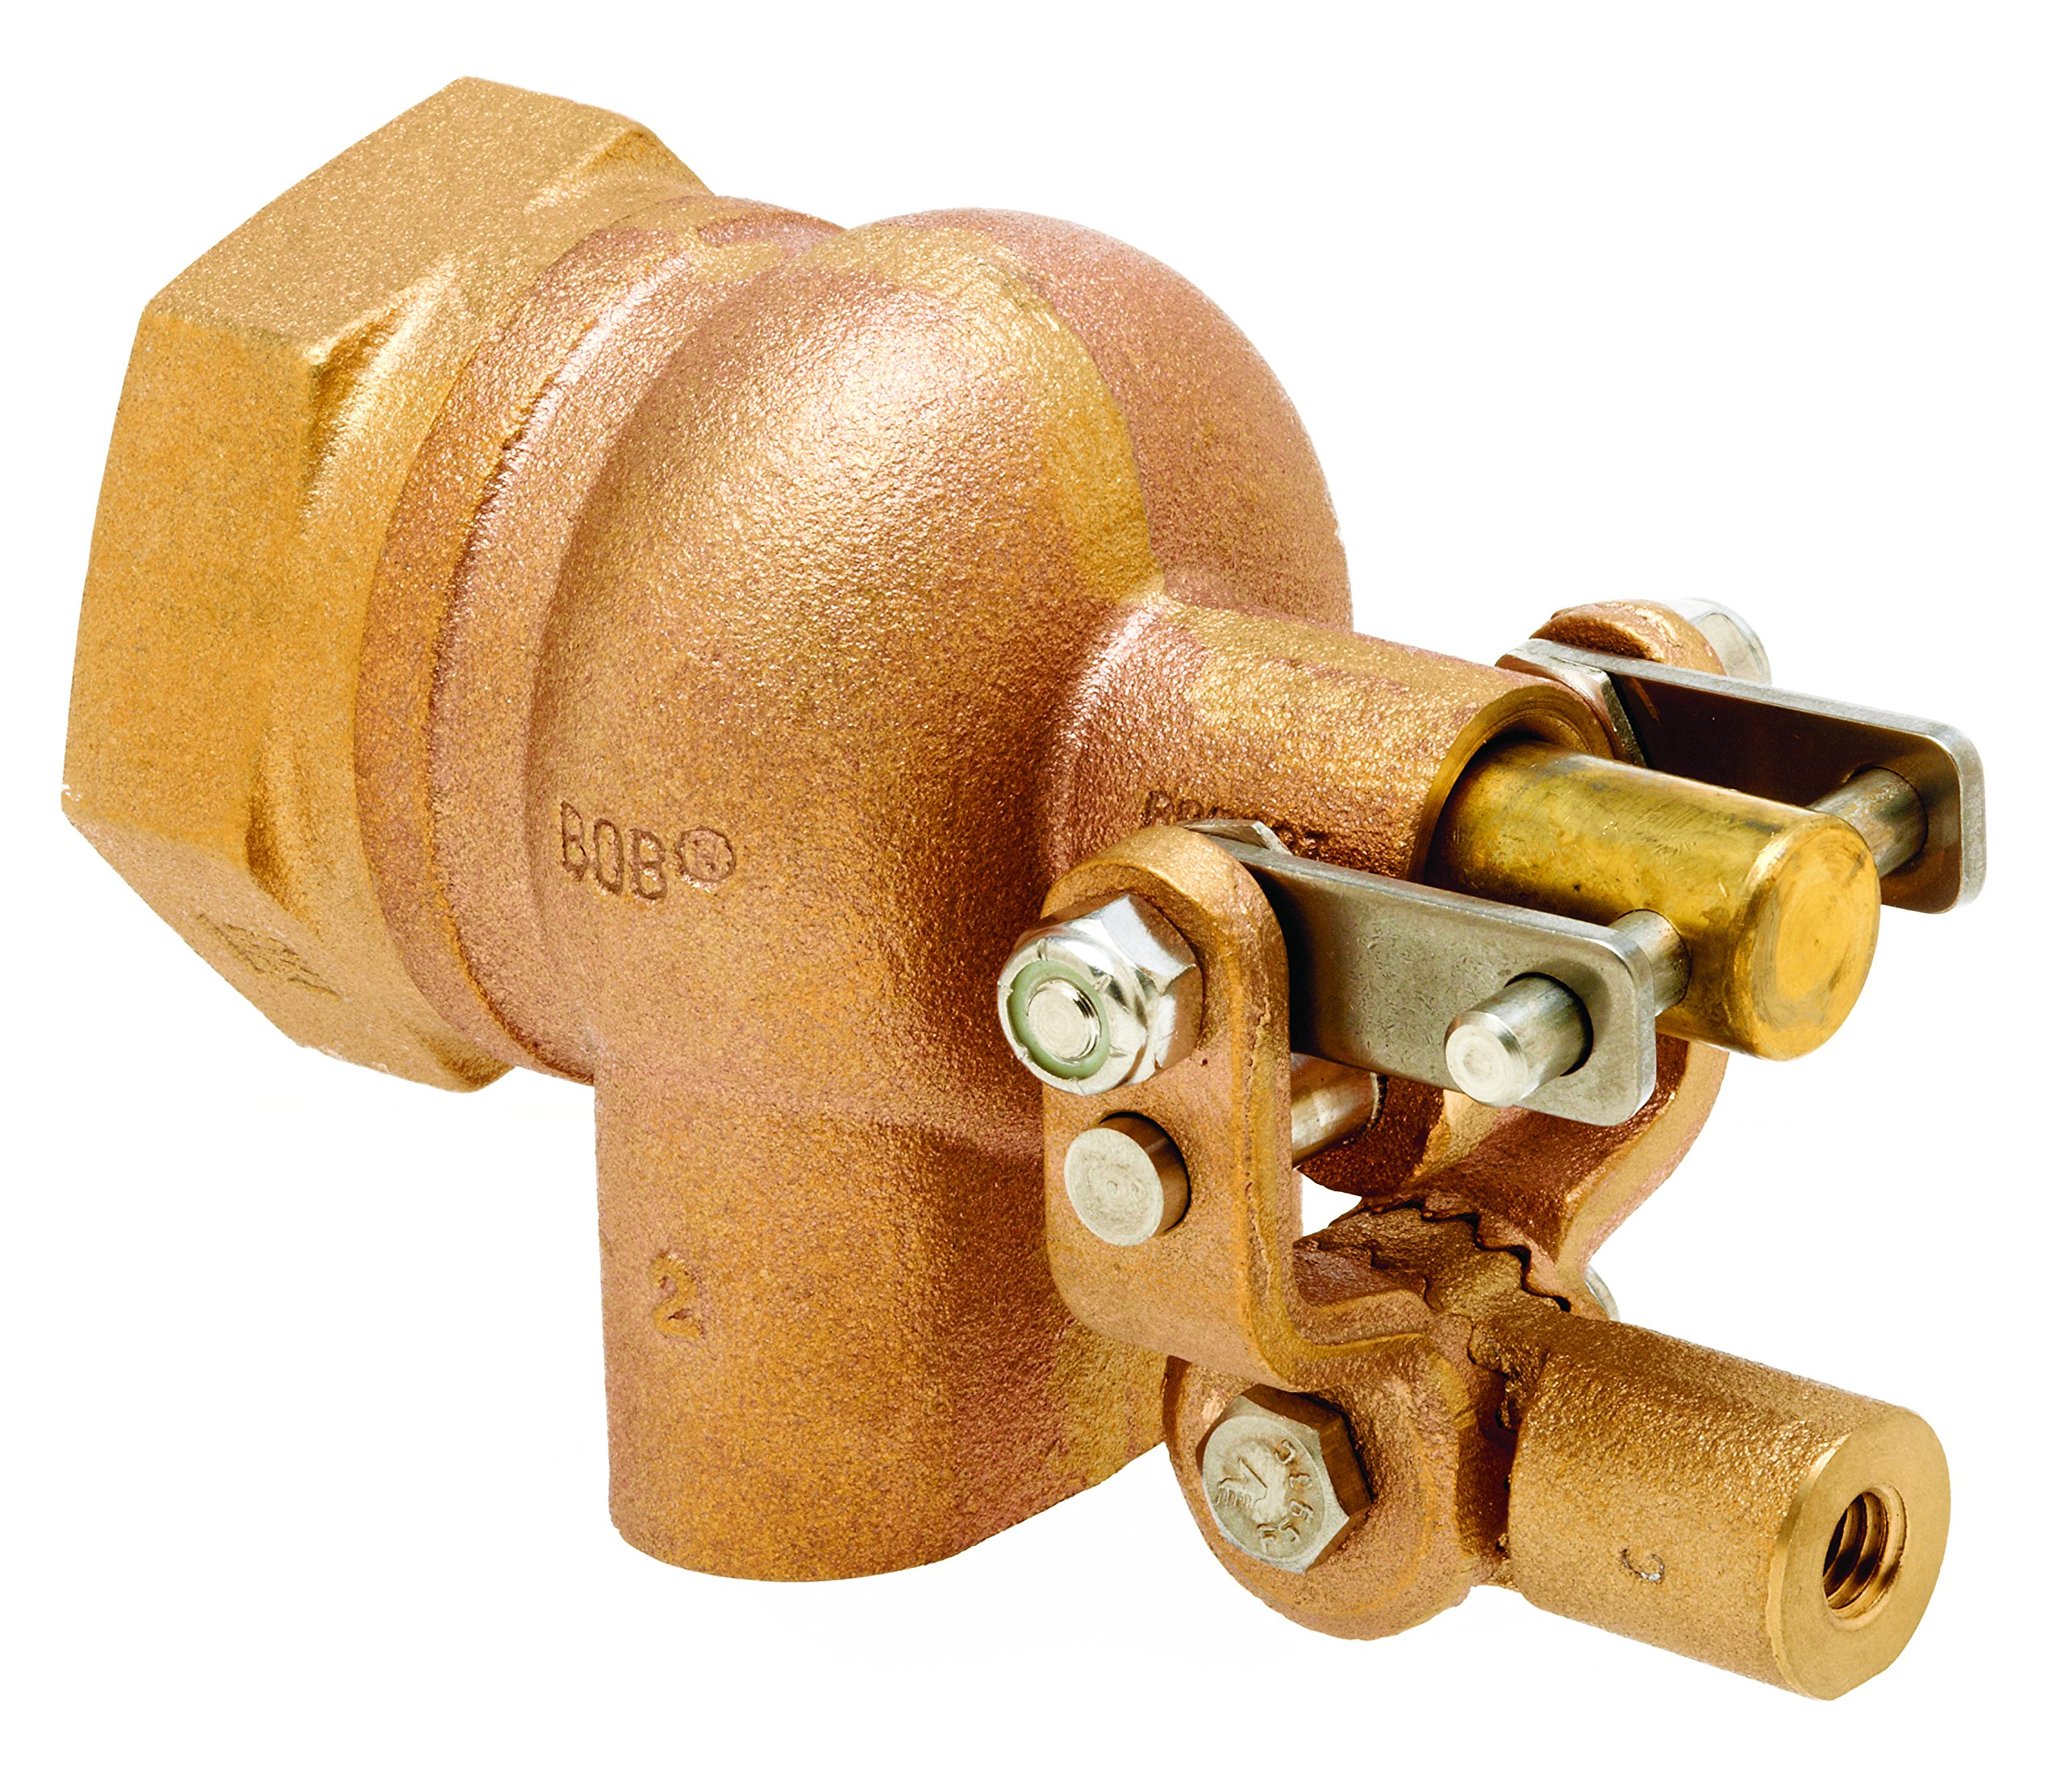 Robert Manufacturing R605T-5 High Turbo Series Bob Red Brass Float Valve Assembly with Stem, 3/4'' NPT Female Inlet x Free Flow Outlet, 115 psi Pressure by Robert Manufacturing (Image #1)